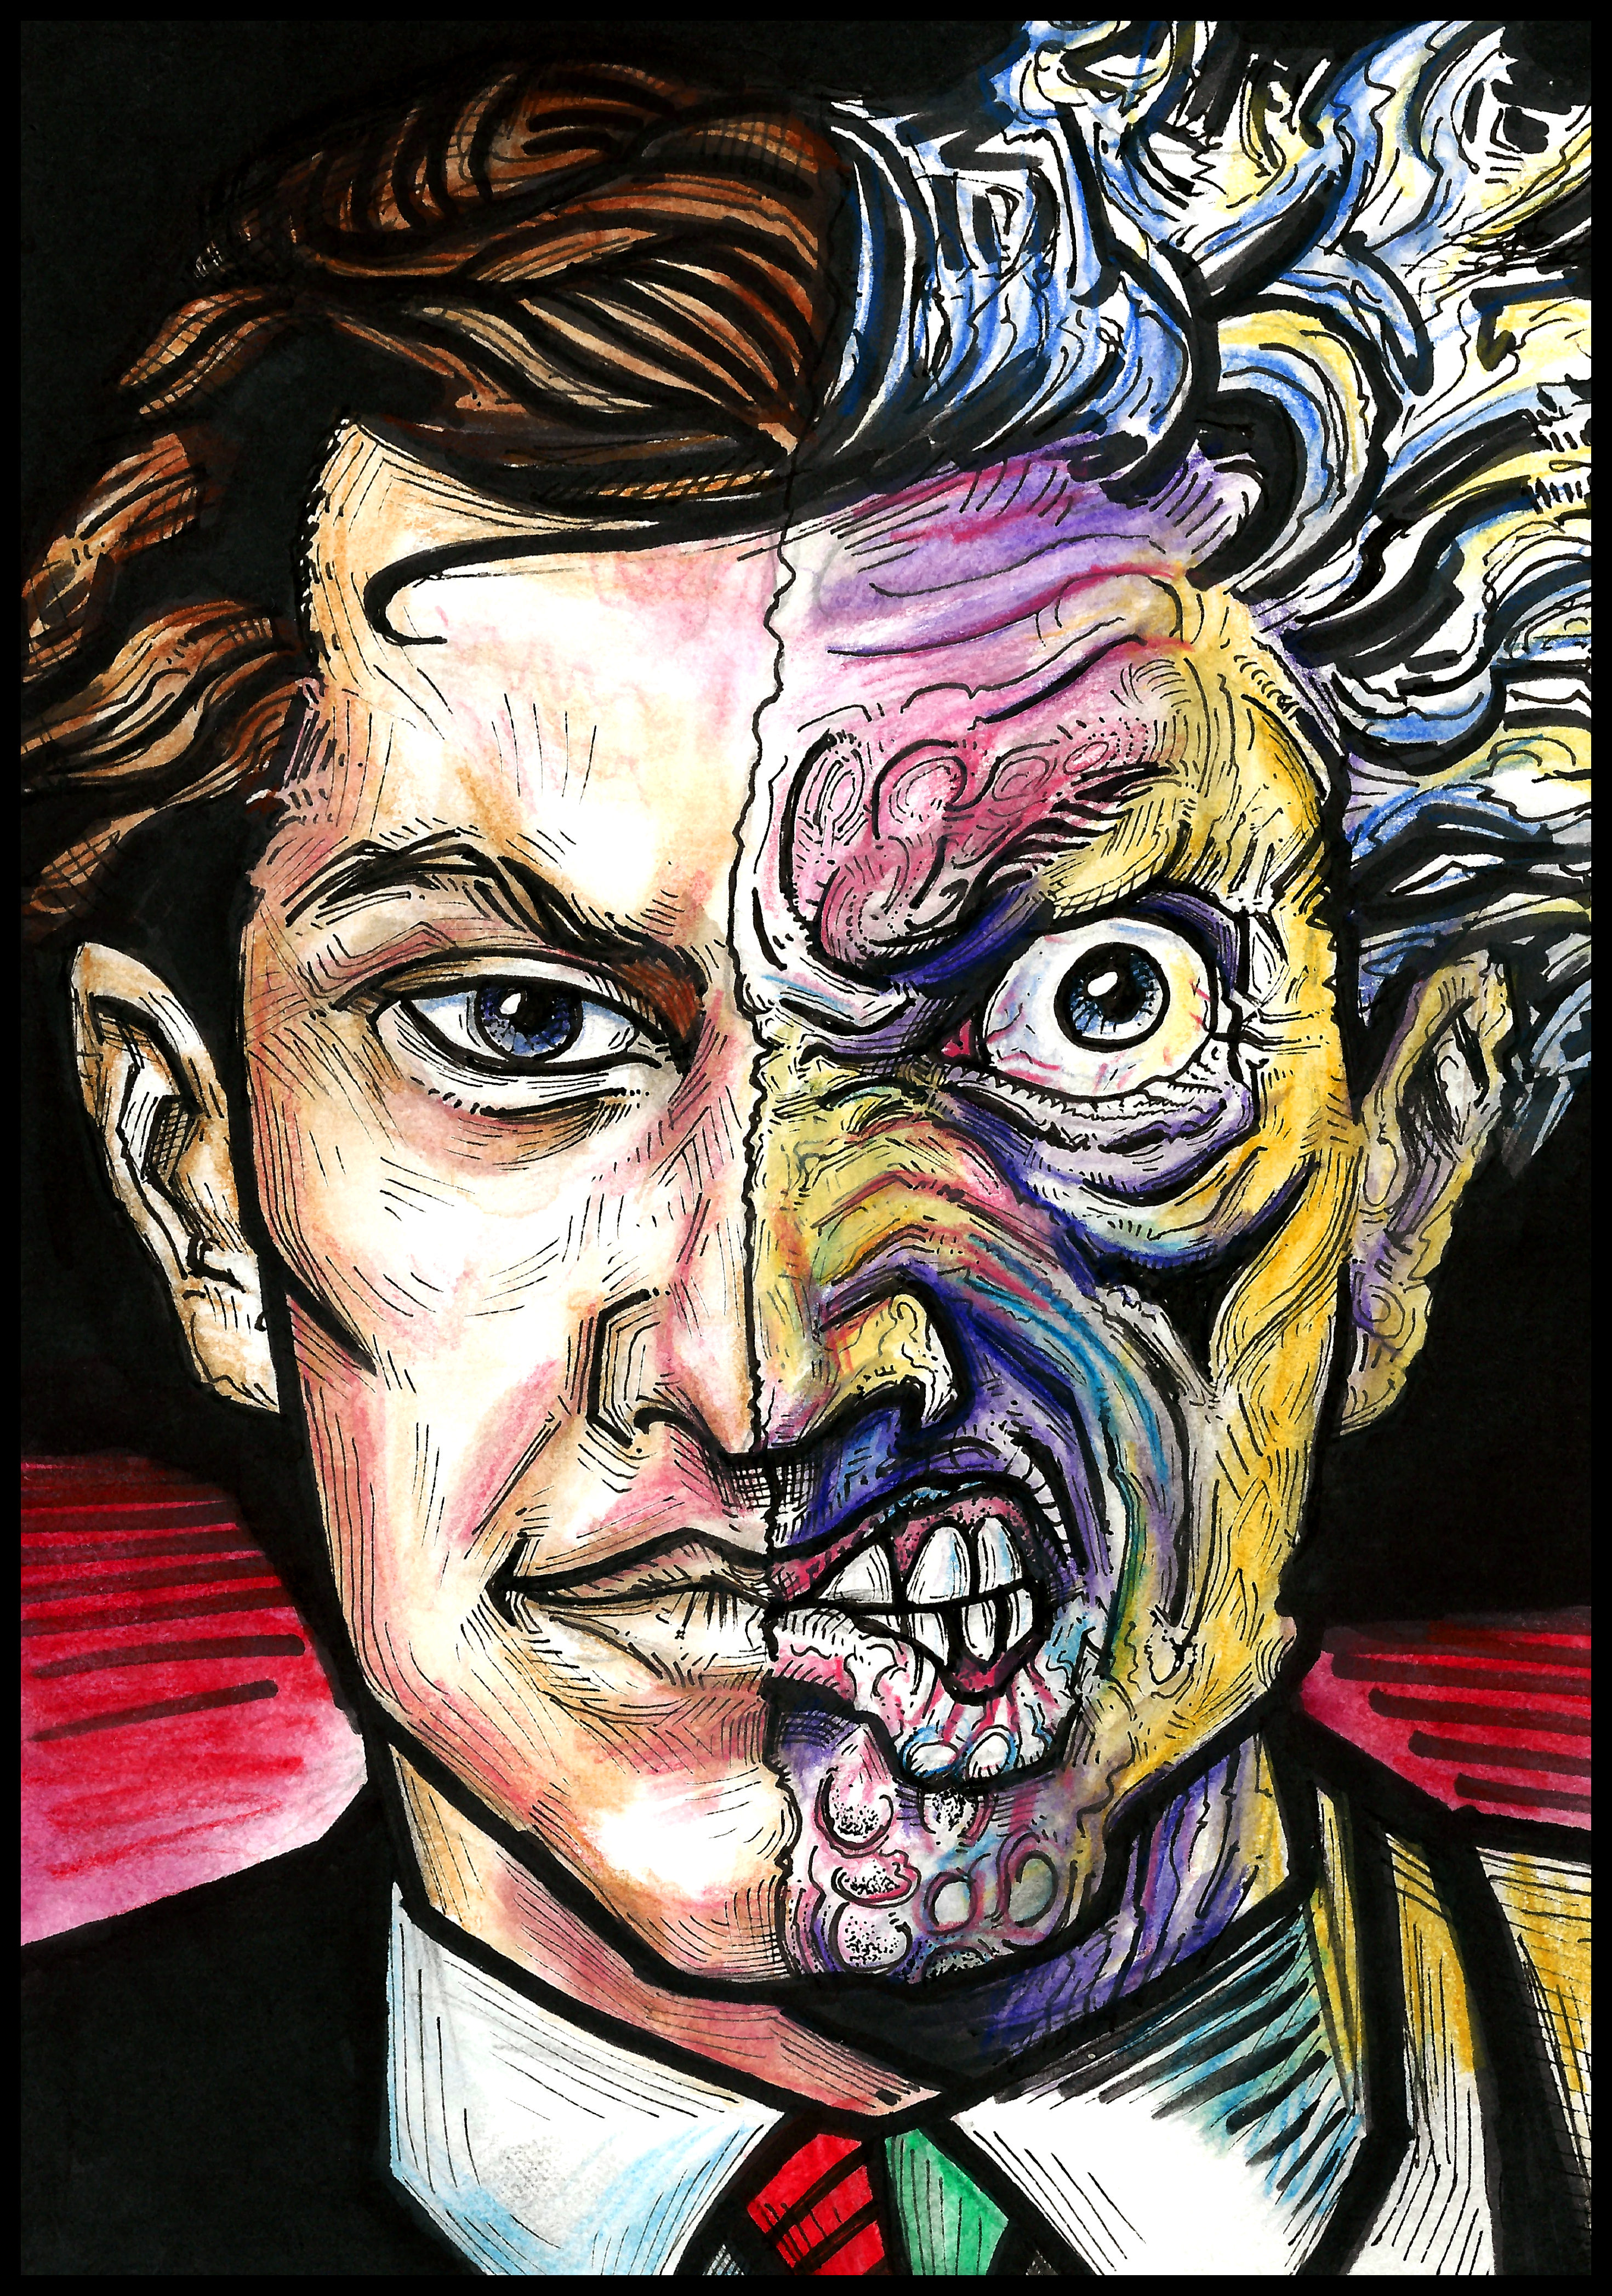 TWO FACE SC